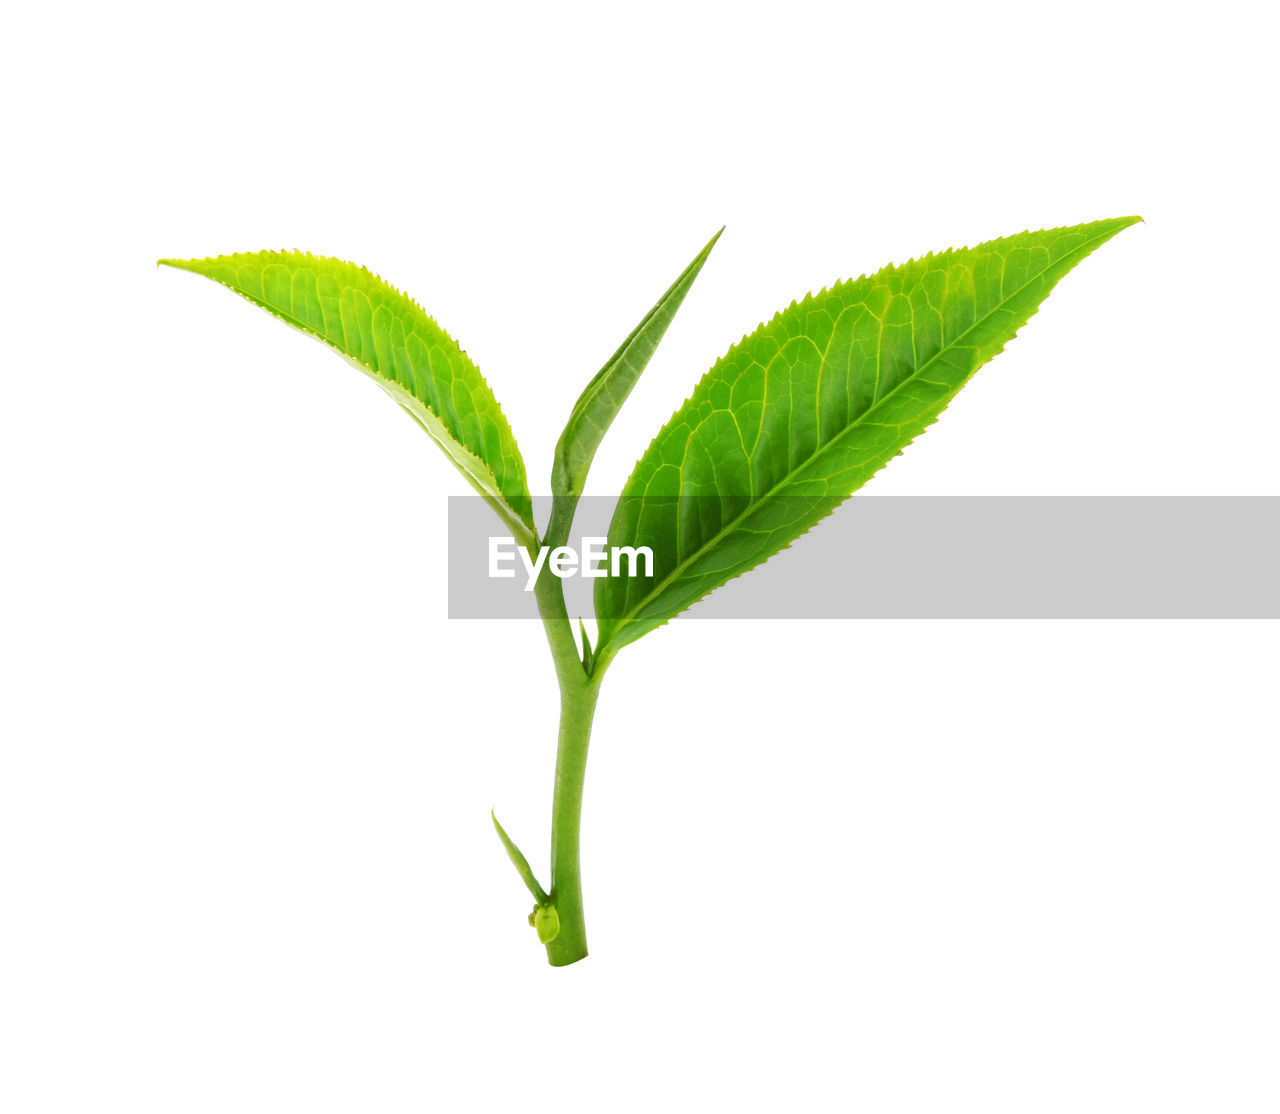 leaf, plant part, green color, white background, studio shot, cut out, nature, plant, no people, close-up, beauty in nature, medicine, herb, food and drink, herbal medicine, growth, freshness, indoors, food, plant stem, care